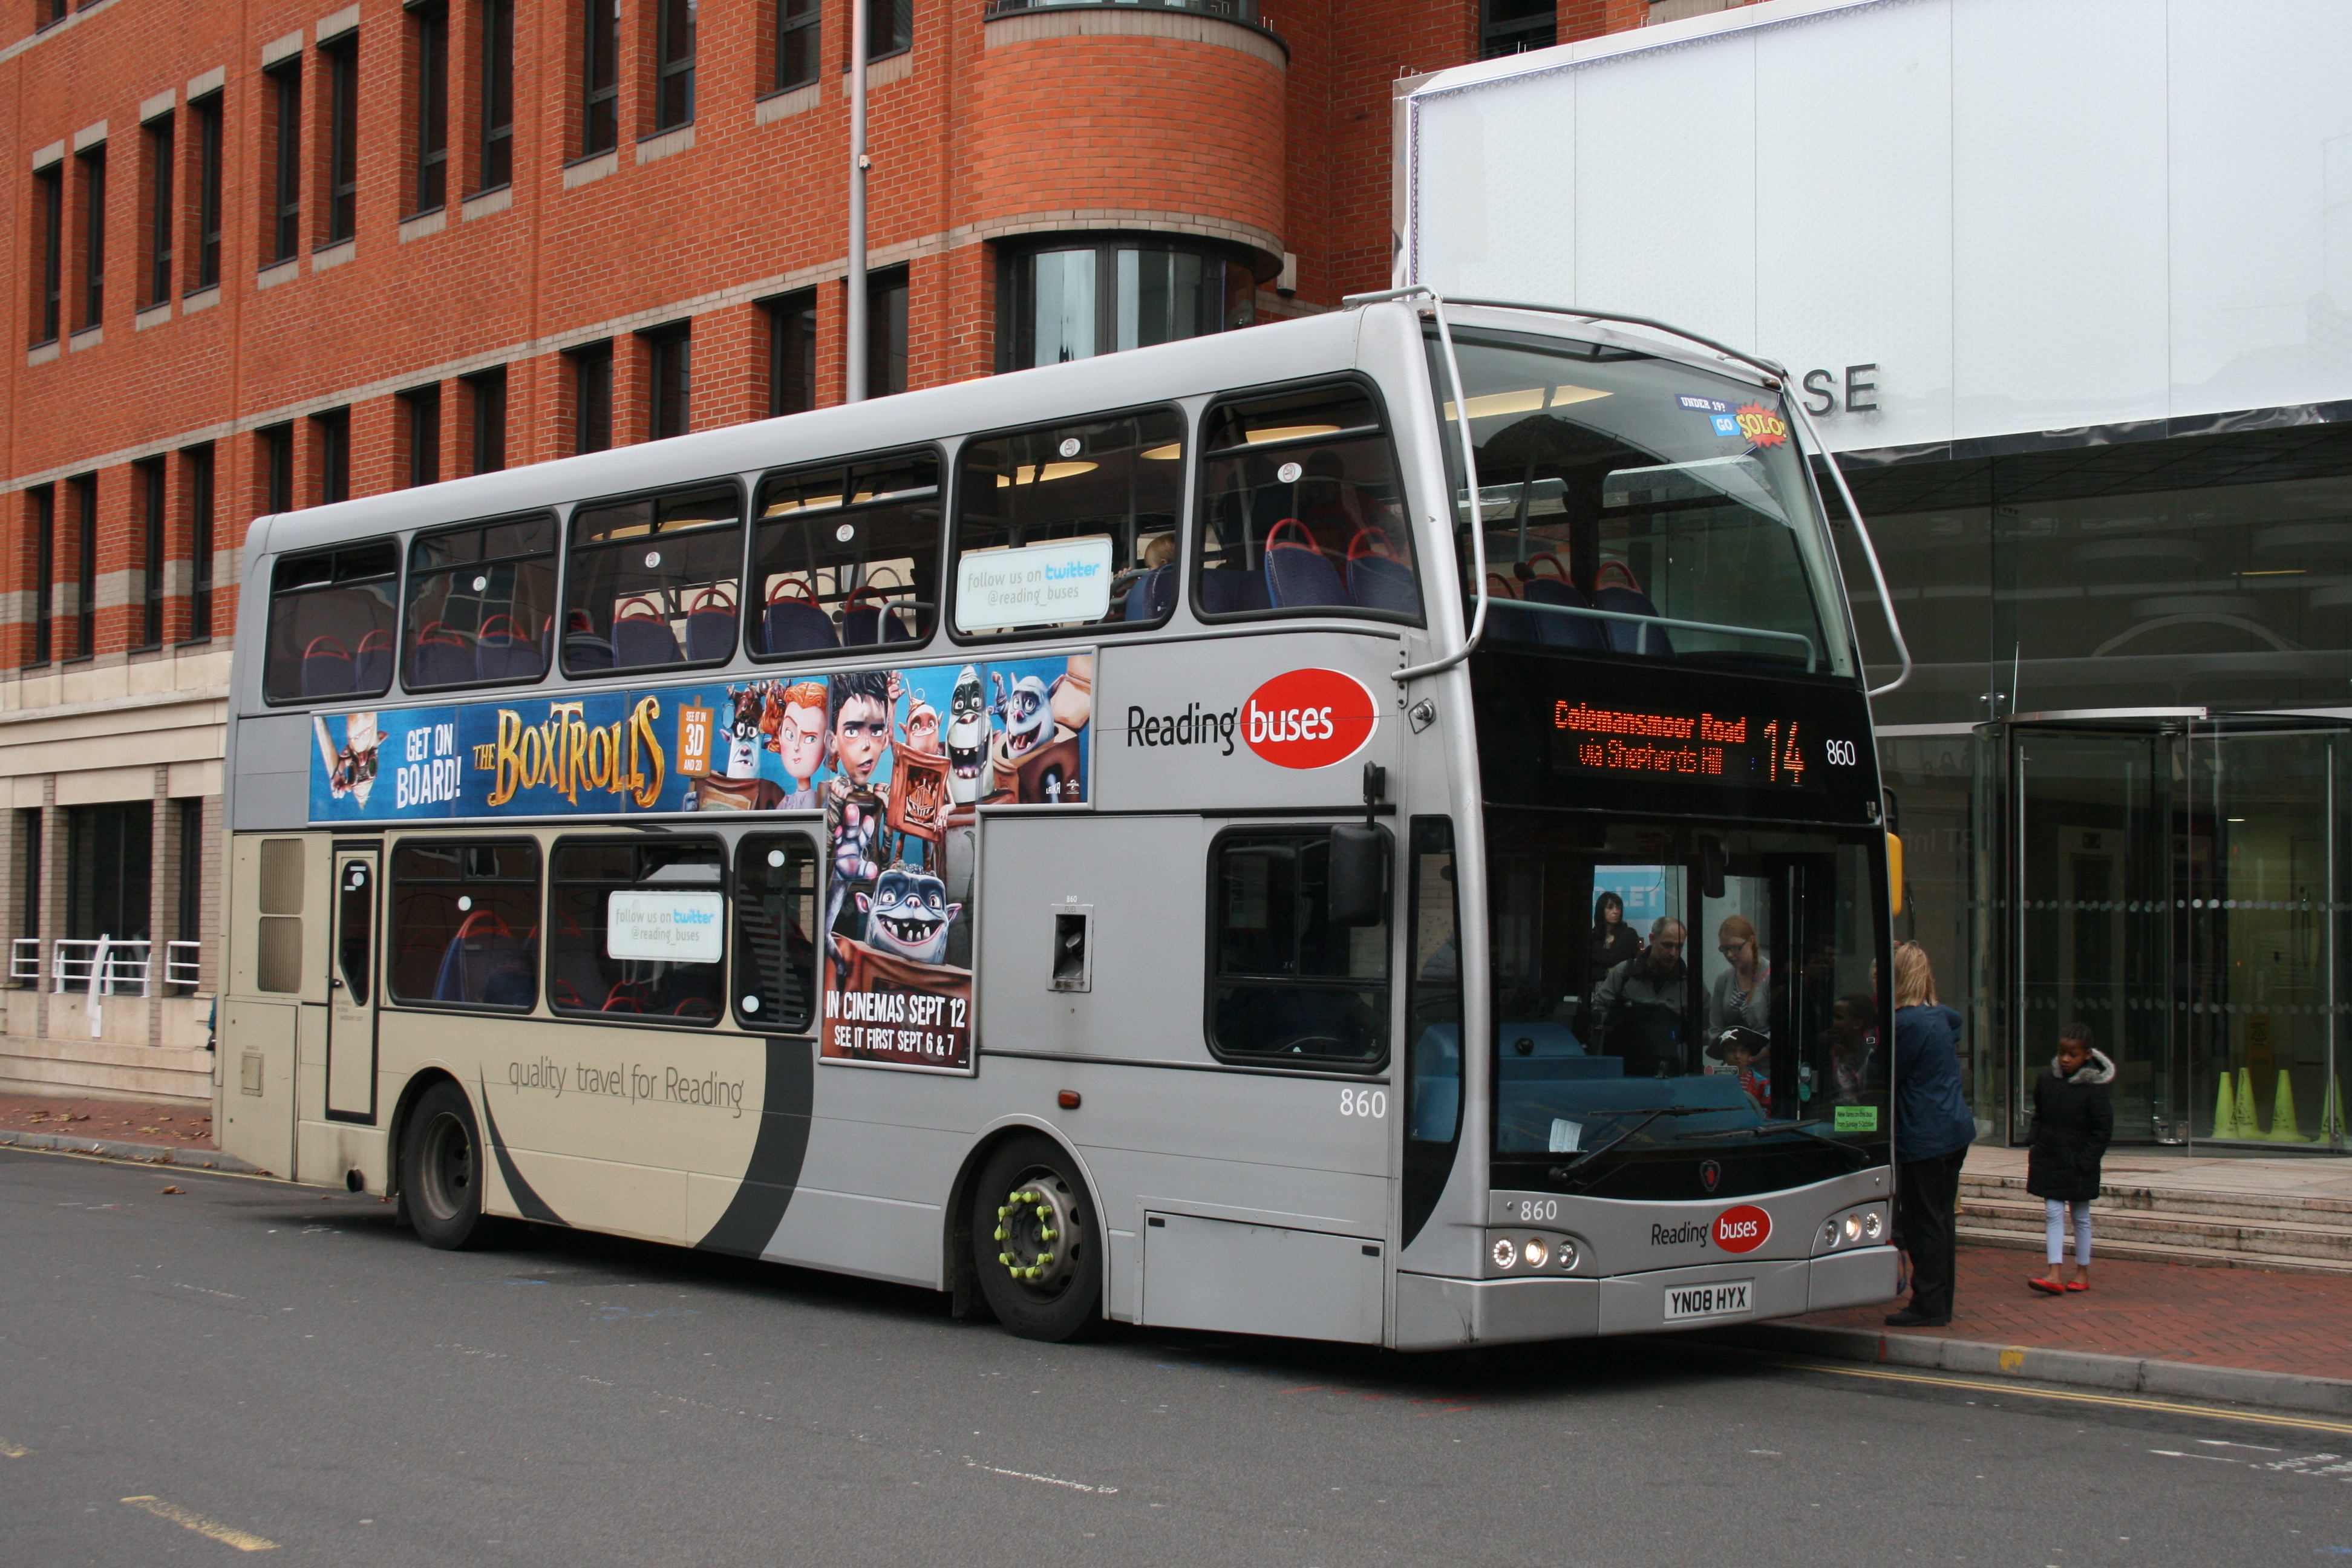 file:reading buses 860 on route 14, reading station (15391103920